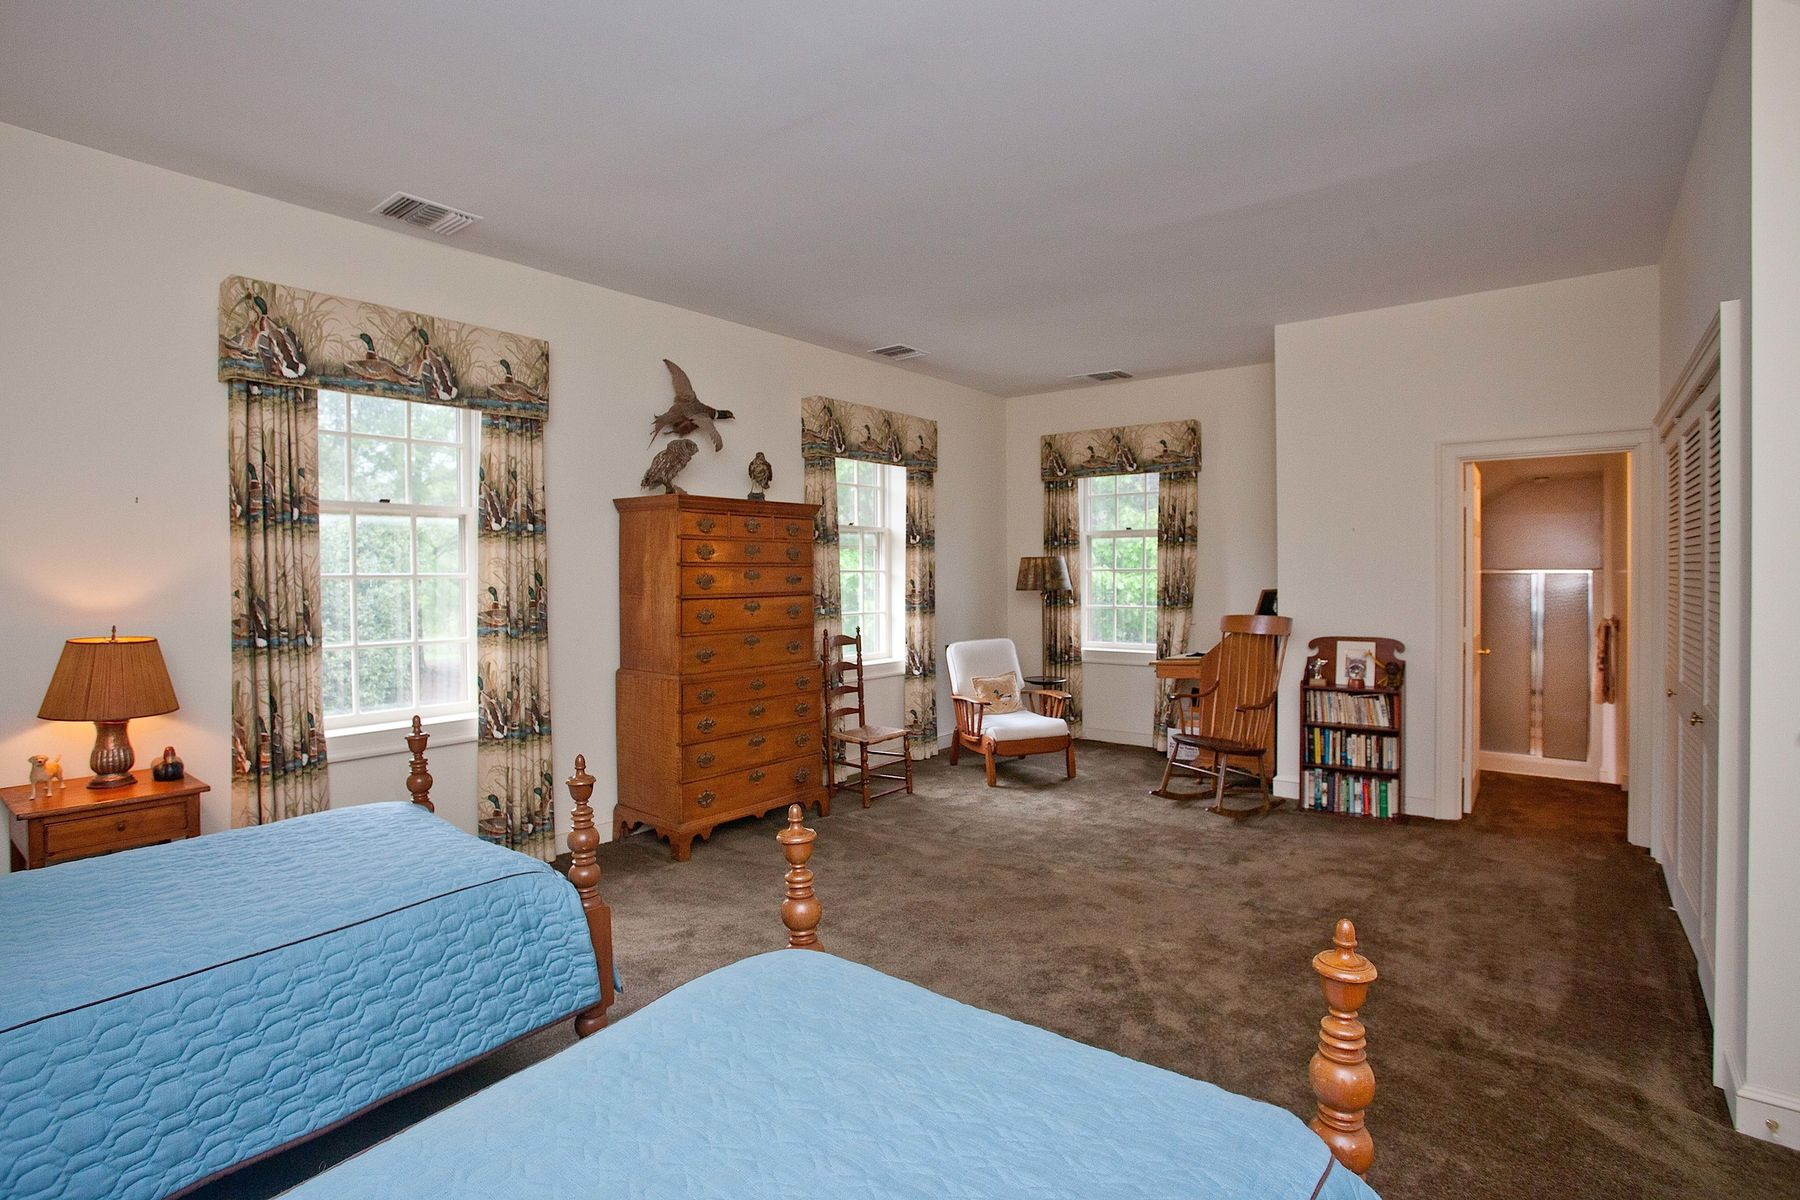 Additional photo for property listing at MOUNT AIR FARM 4503 MOUNT AIR FARM Crozet, Virginia 22932 United States